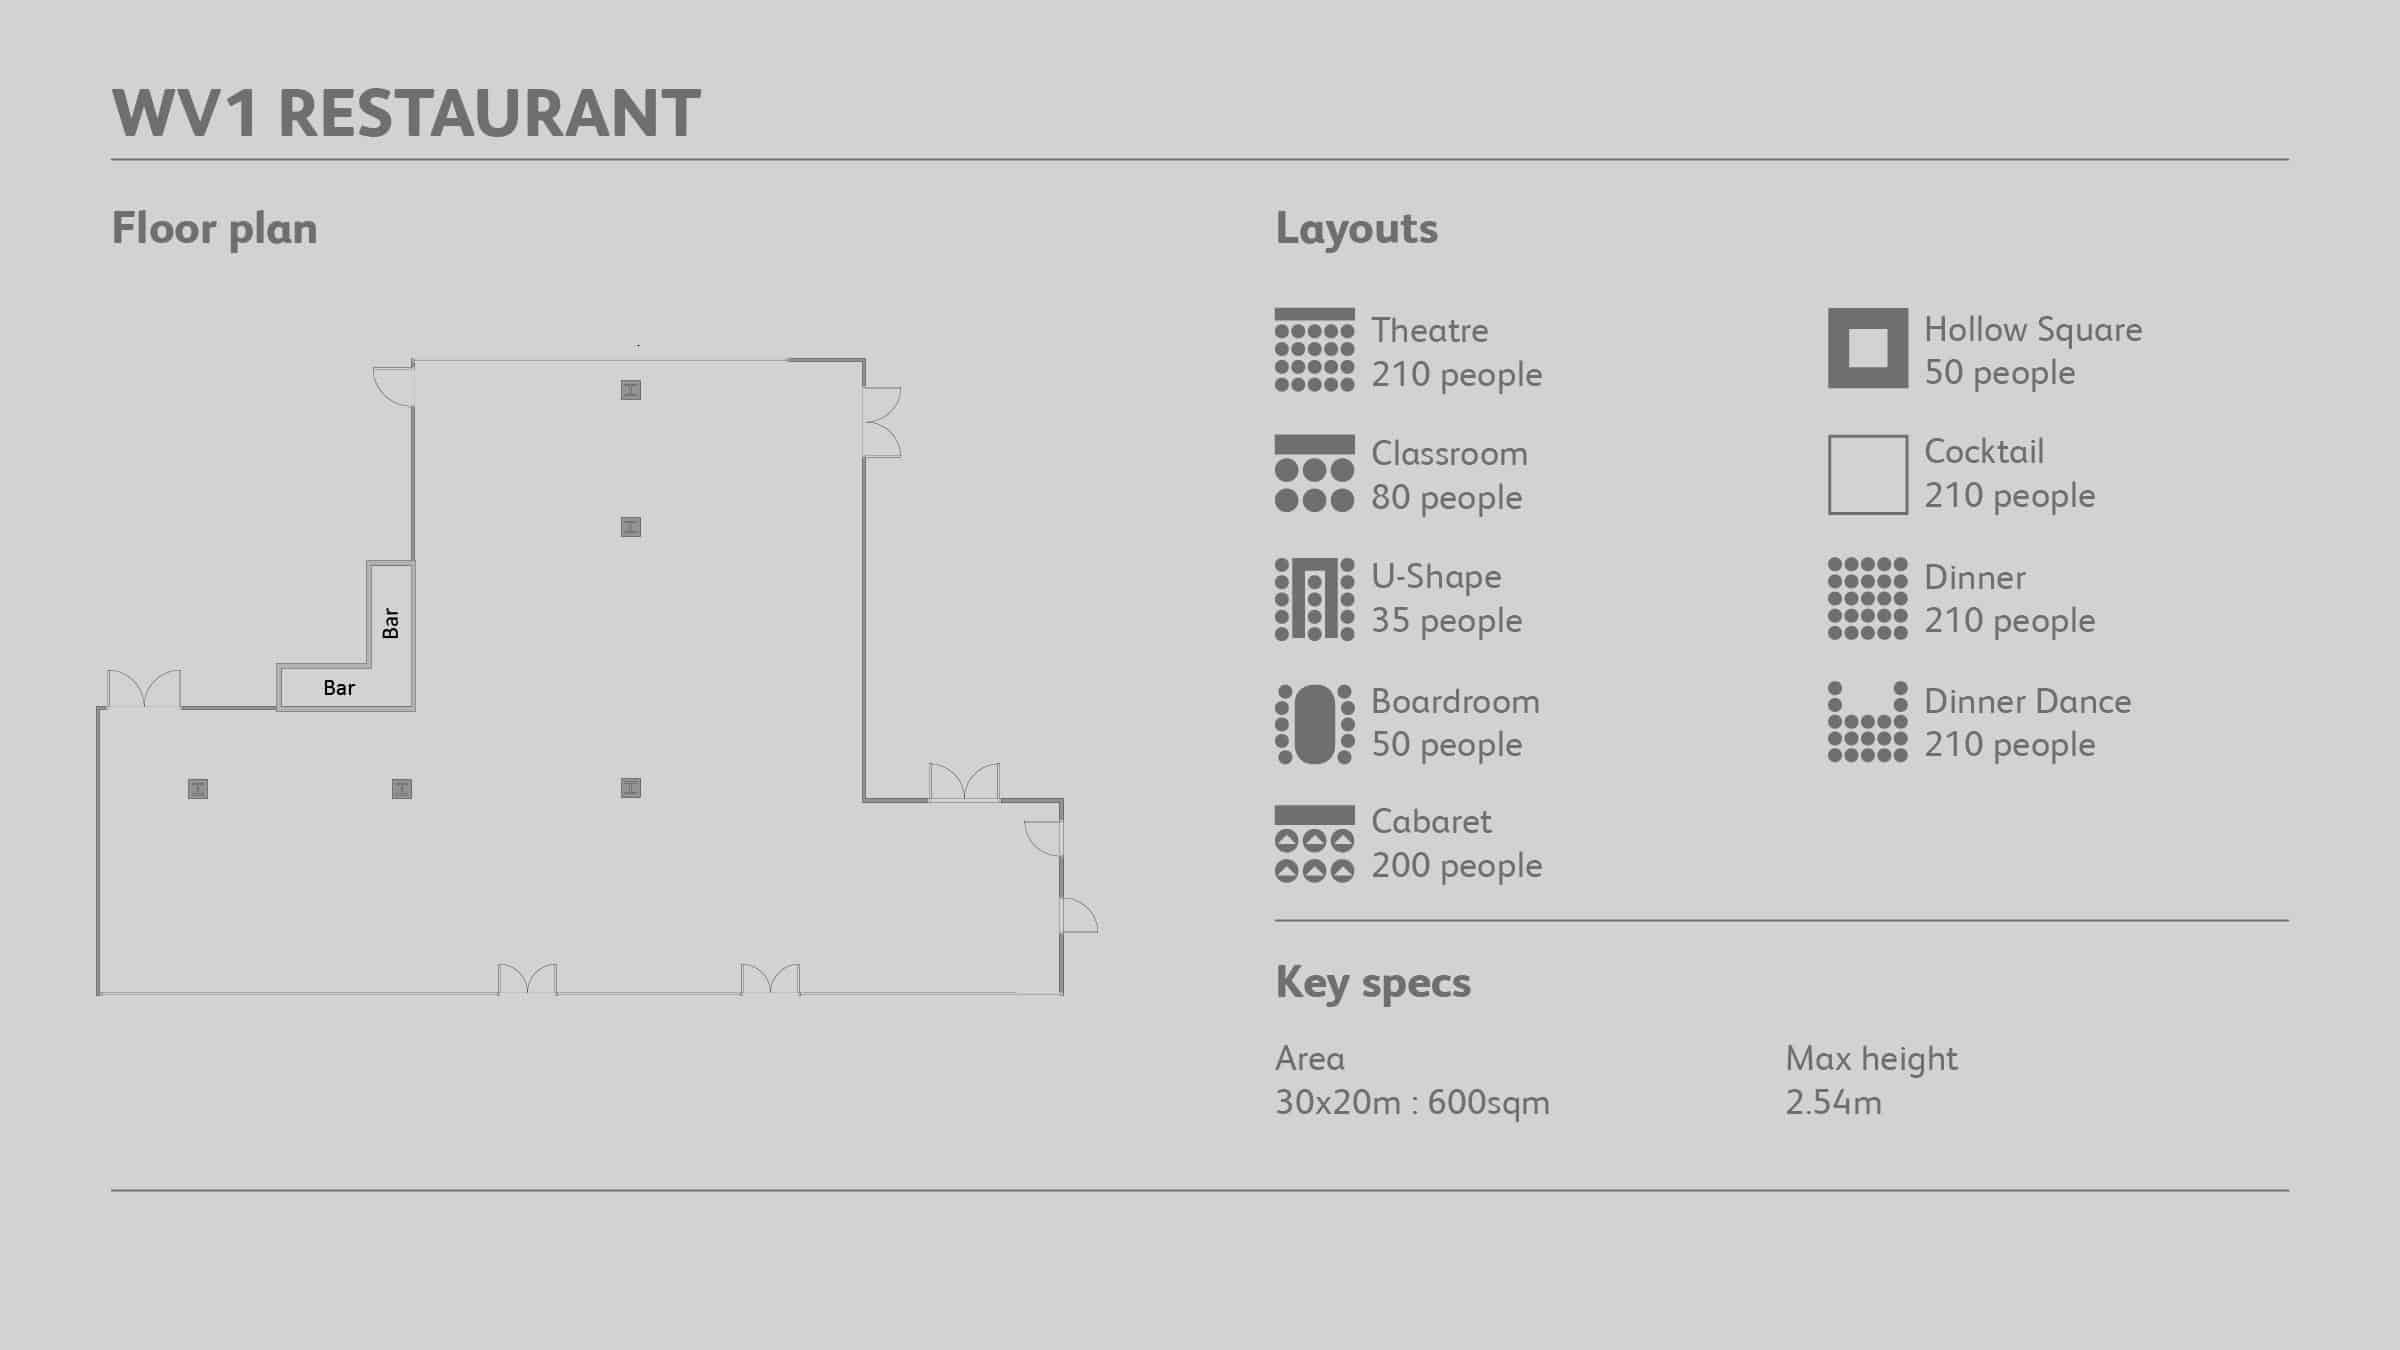 Floor plan of WV1 Restaurant